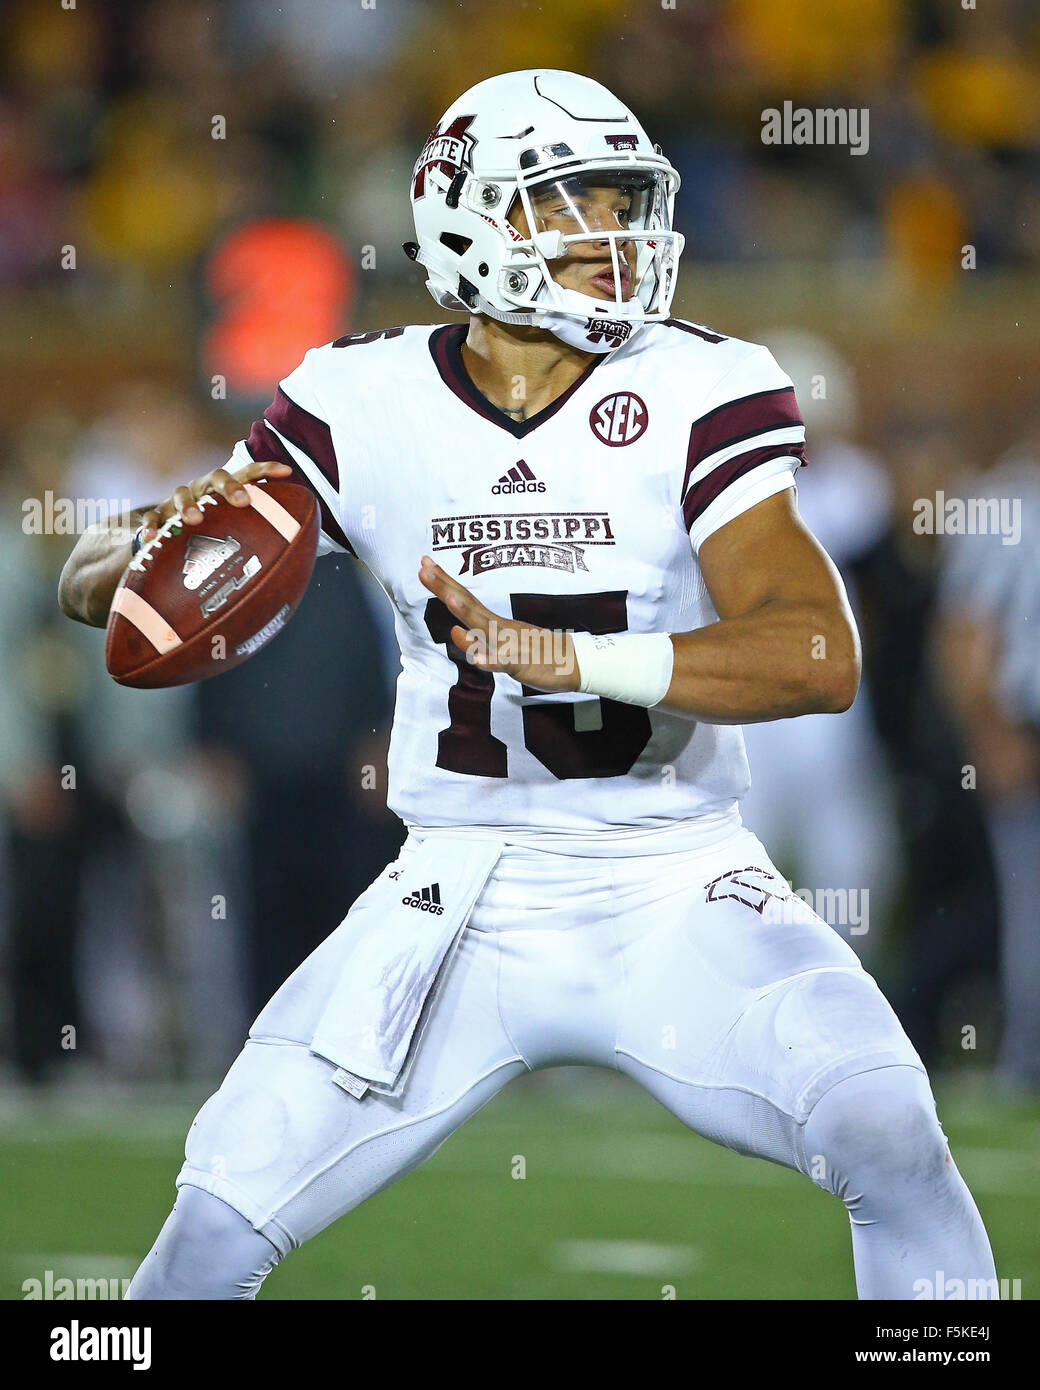 new product dfb60 3ce0d November, 5, 2015: Mississippi State Bulldogs quarterback ...